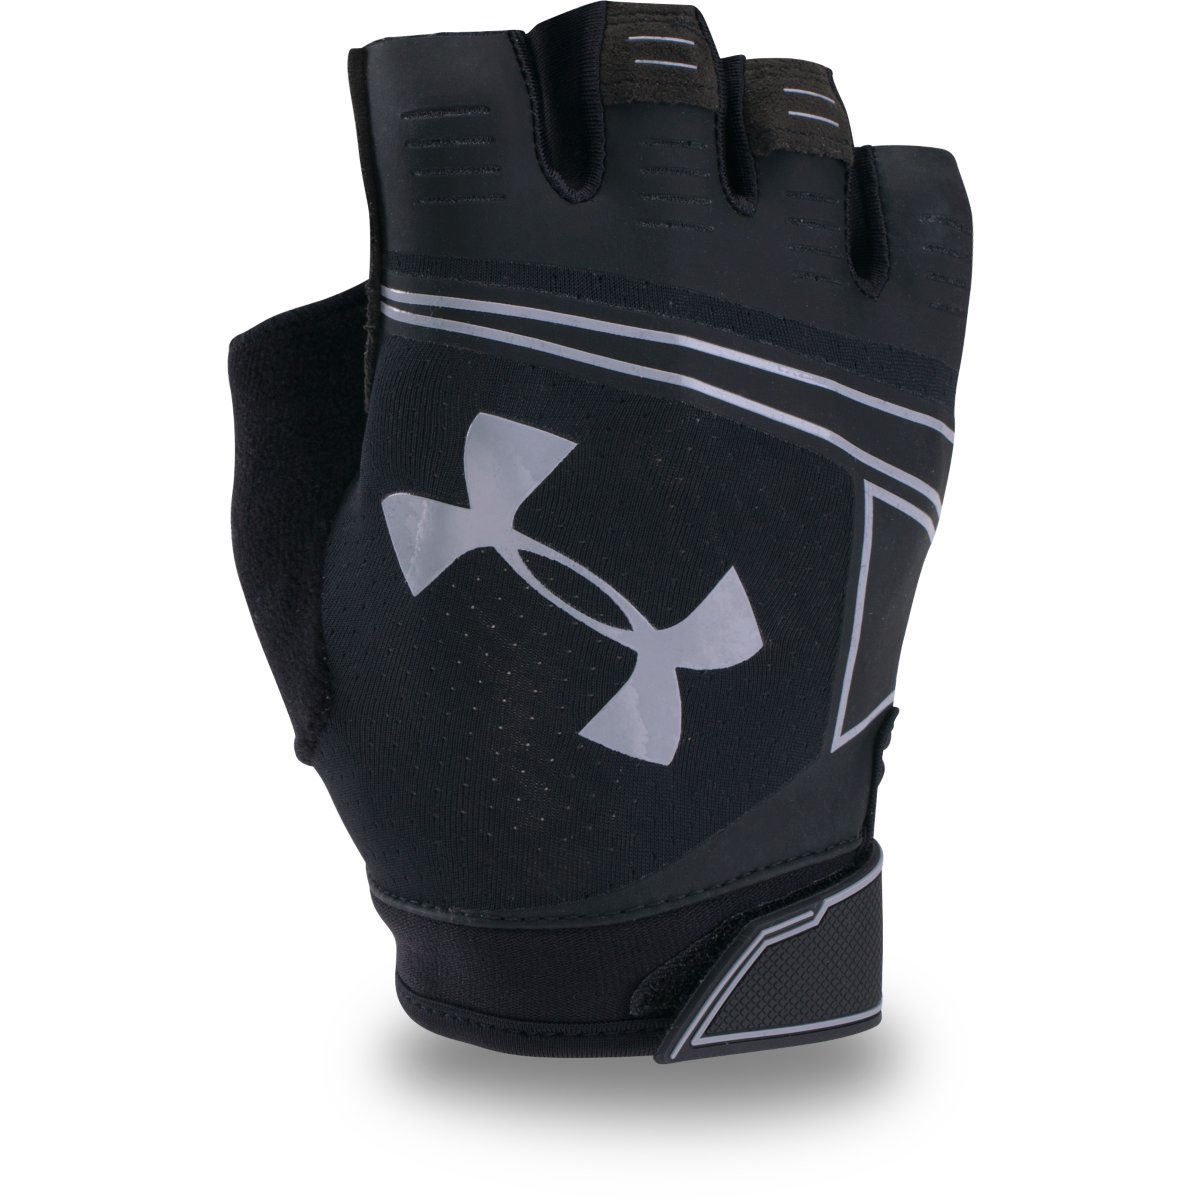 Under Armour Coolswitch Flux Training Glove   Gloves